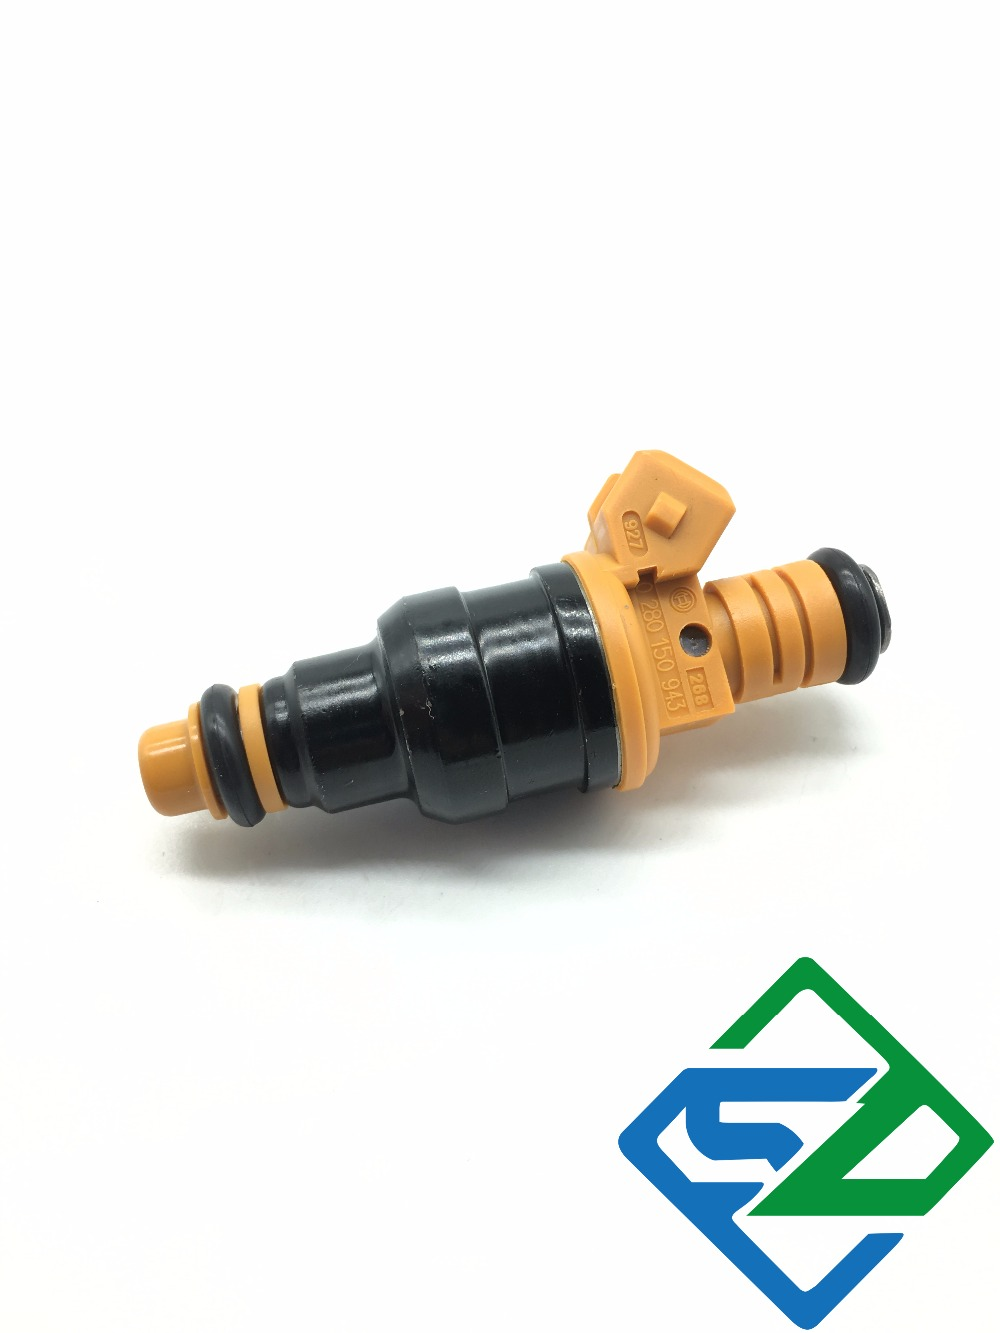 Fuel Injector Nozzle For Ford 4.6 5.0 5.4 5.8 0280150943 0 280 150 943